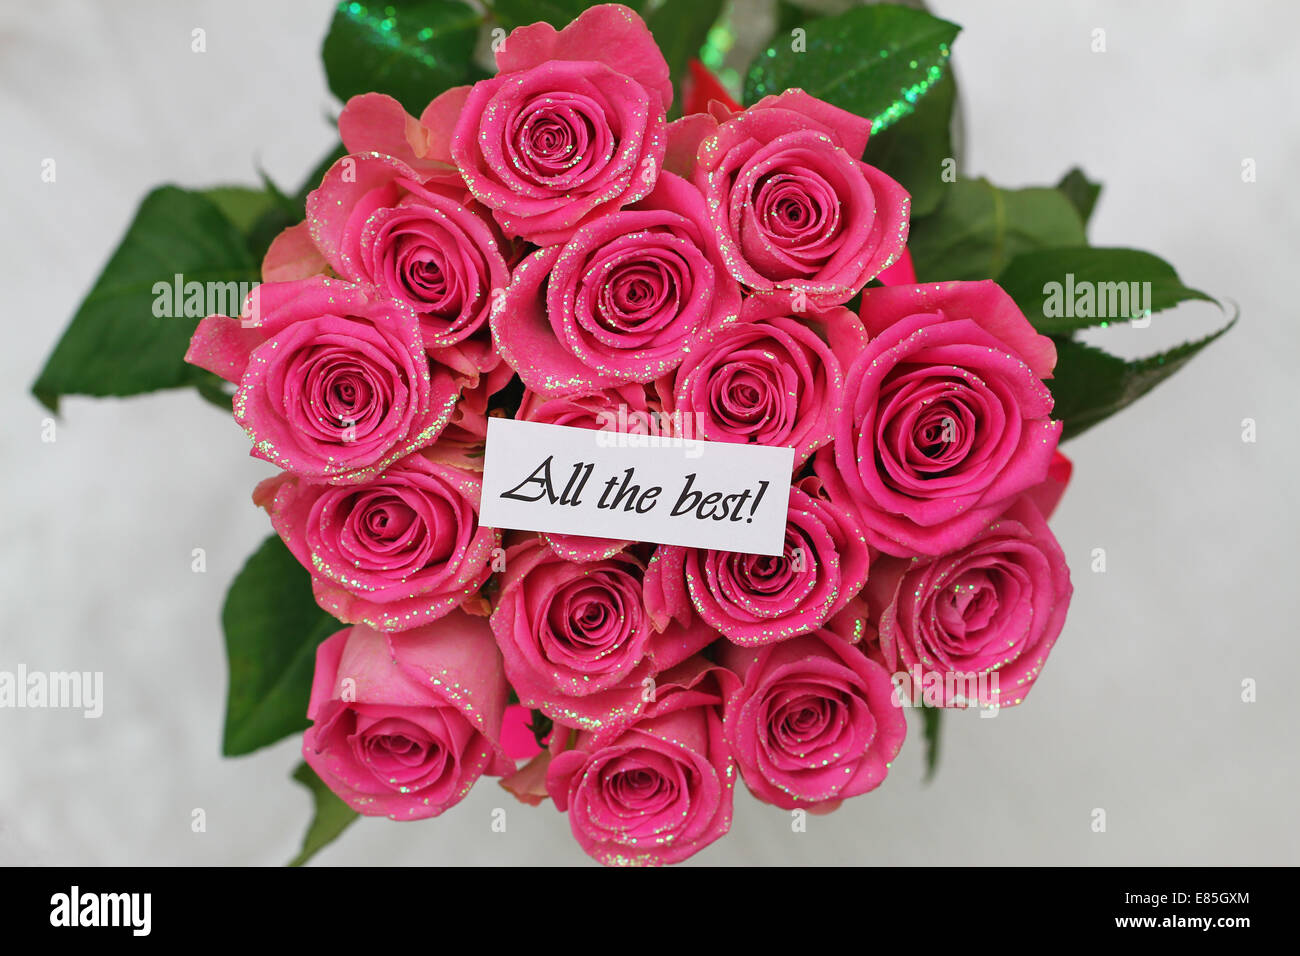 All The Best Card With Pink Roses Bouquet Stock Photo 73881772 Alamy